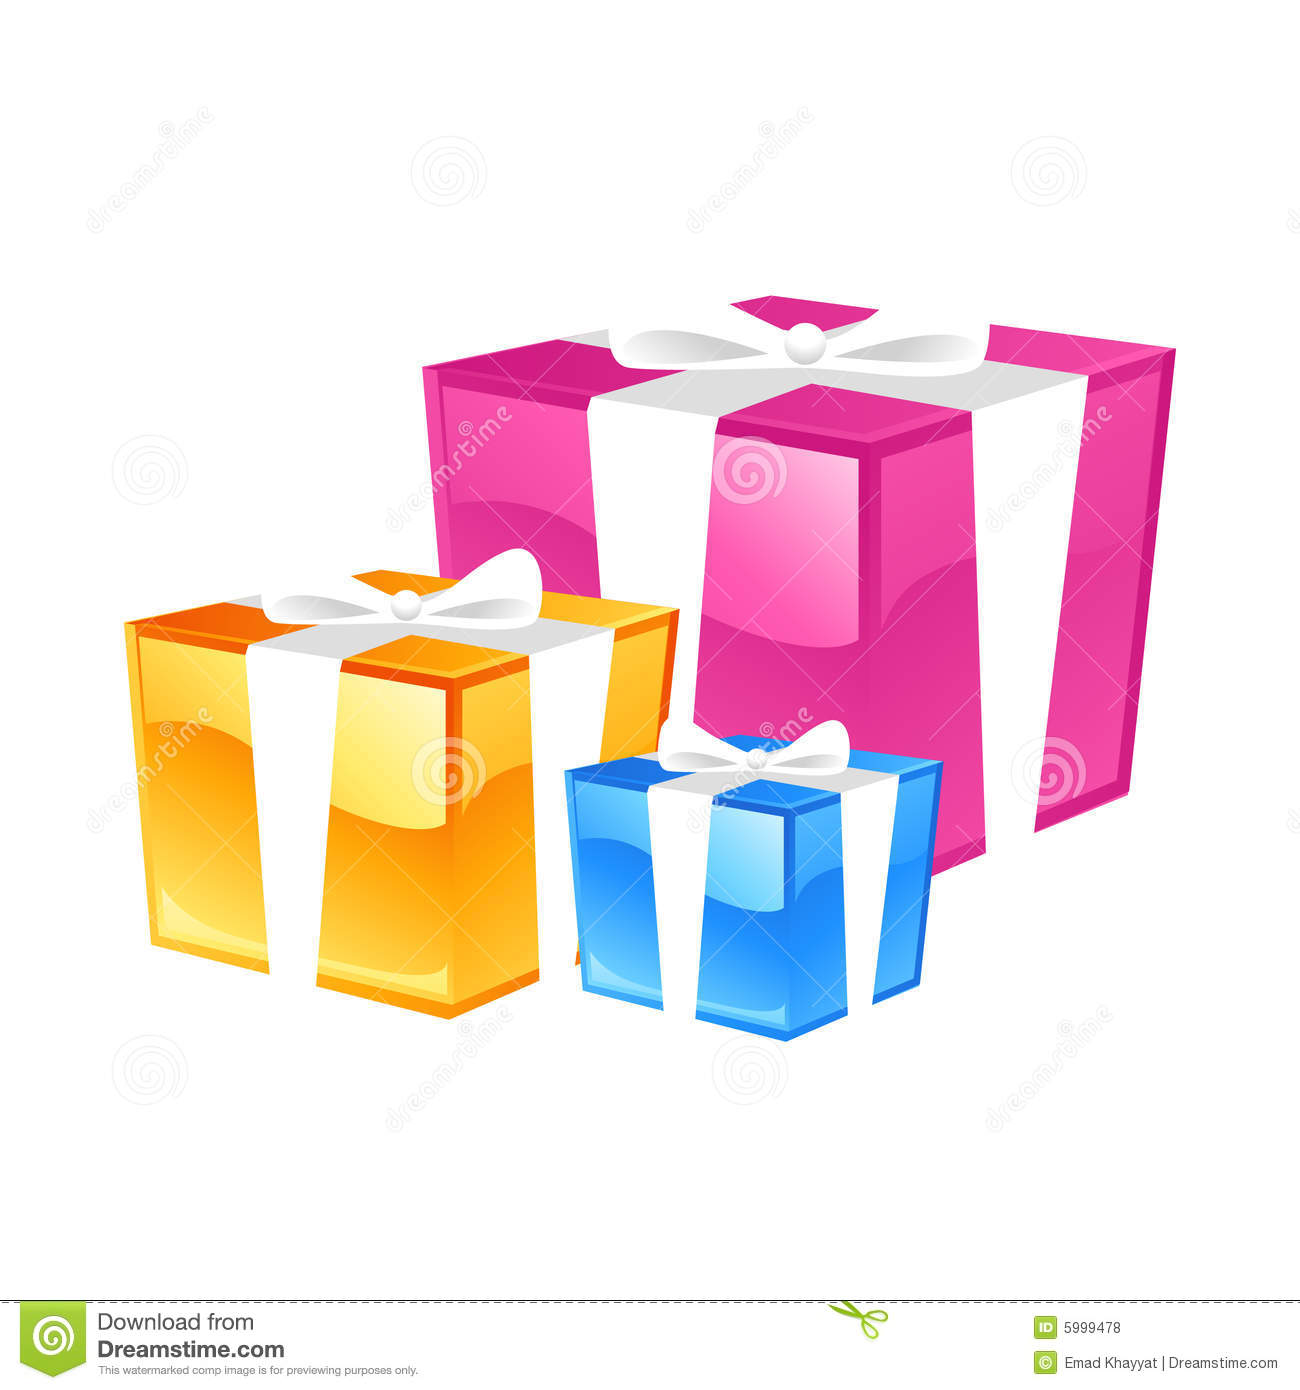 Gifts stock illustration of presents boxes